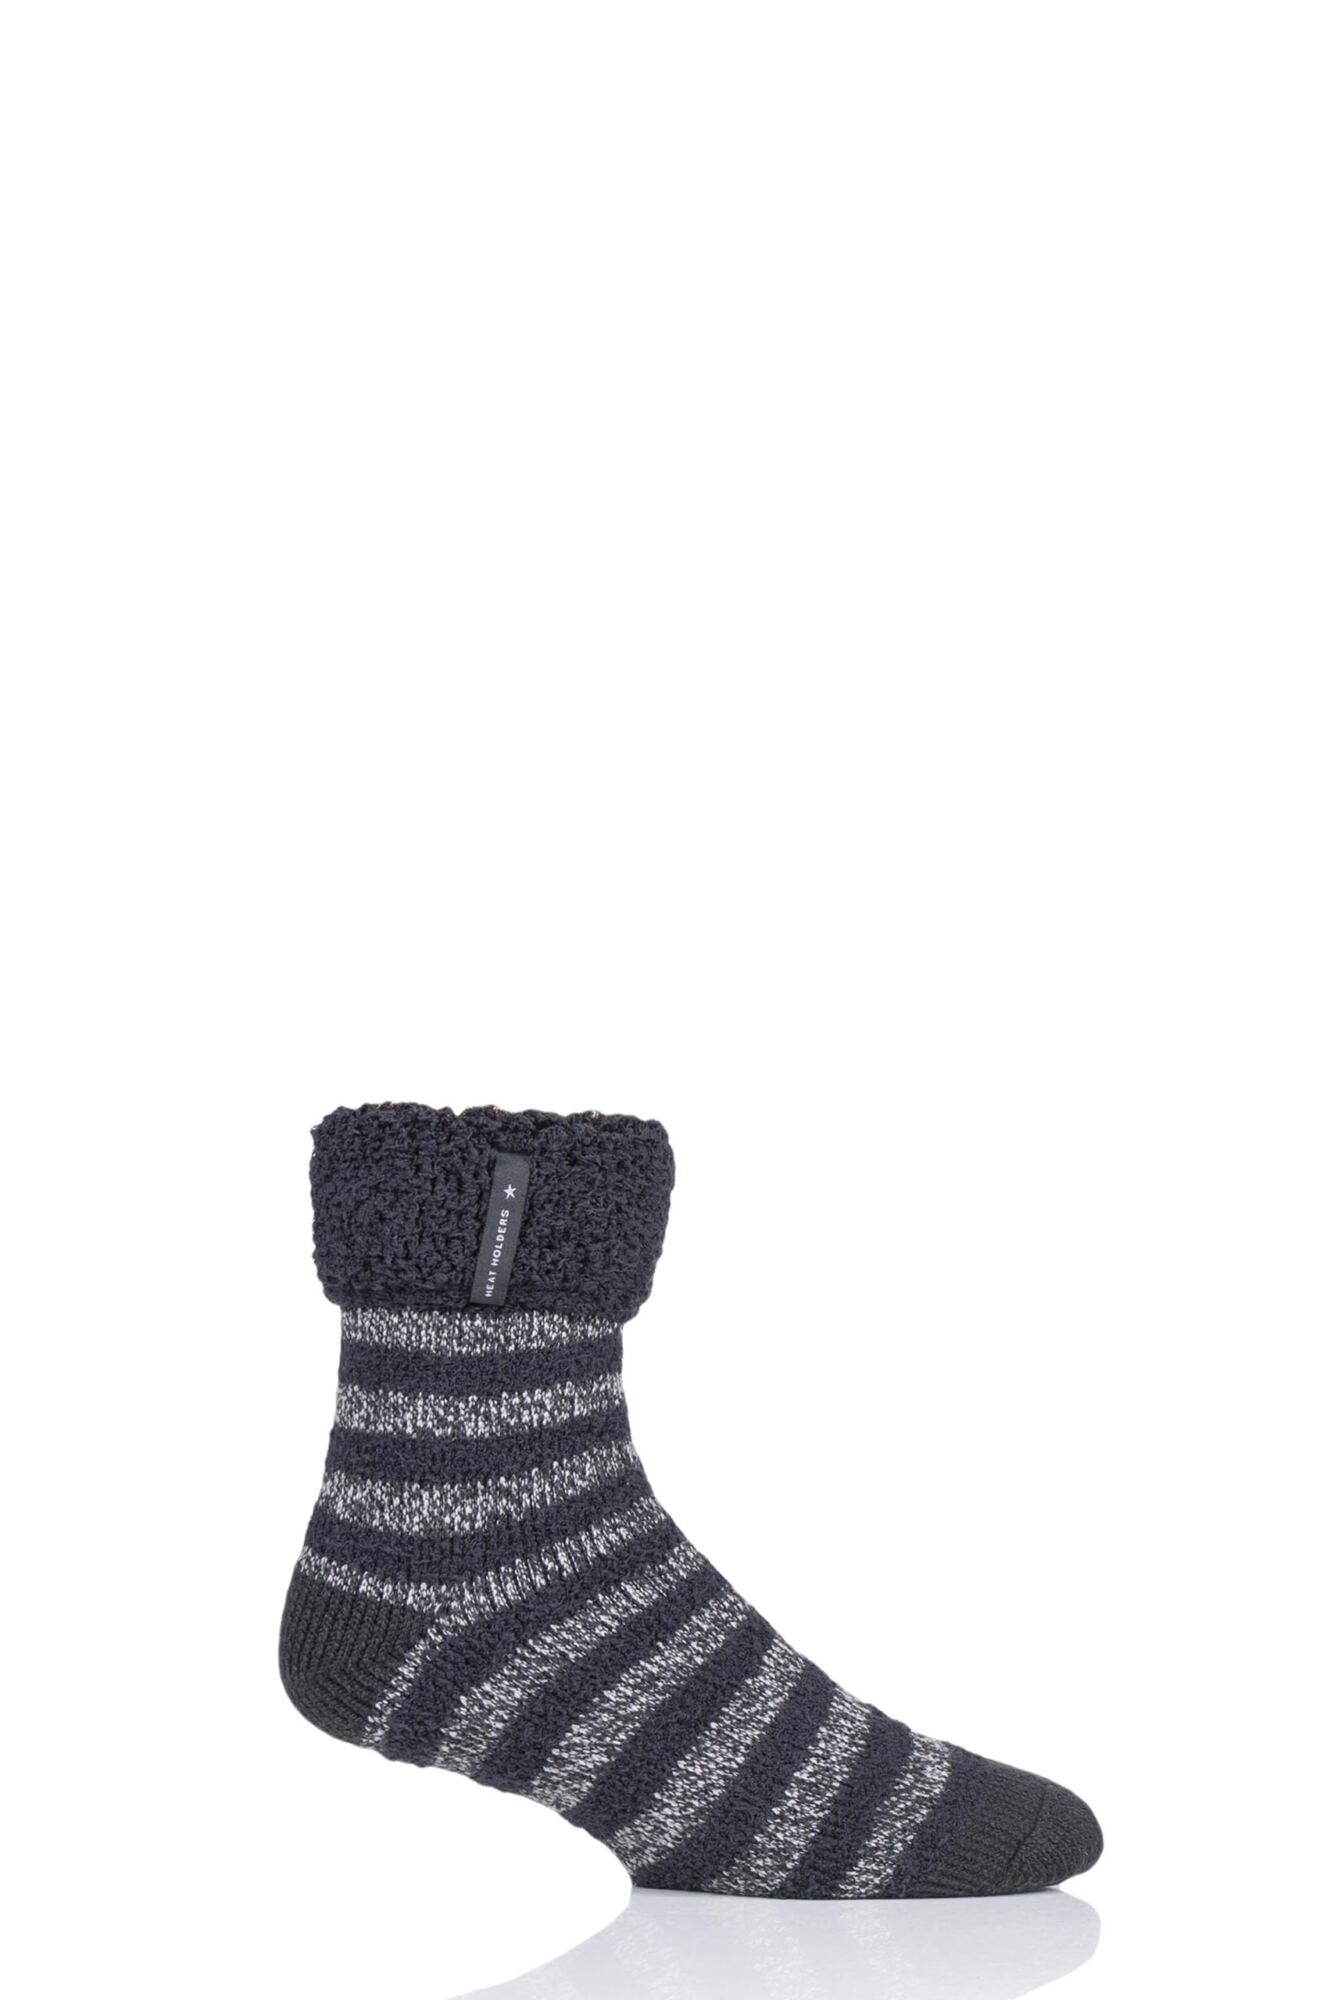 1 Pair Olwen Sleep Socks Men's - Heat Holders